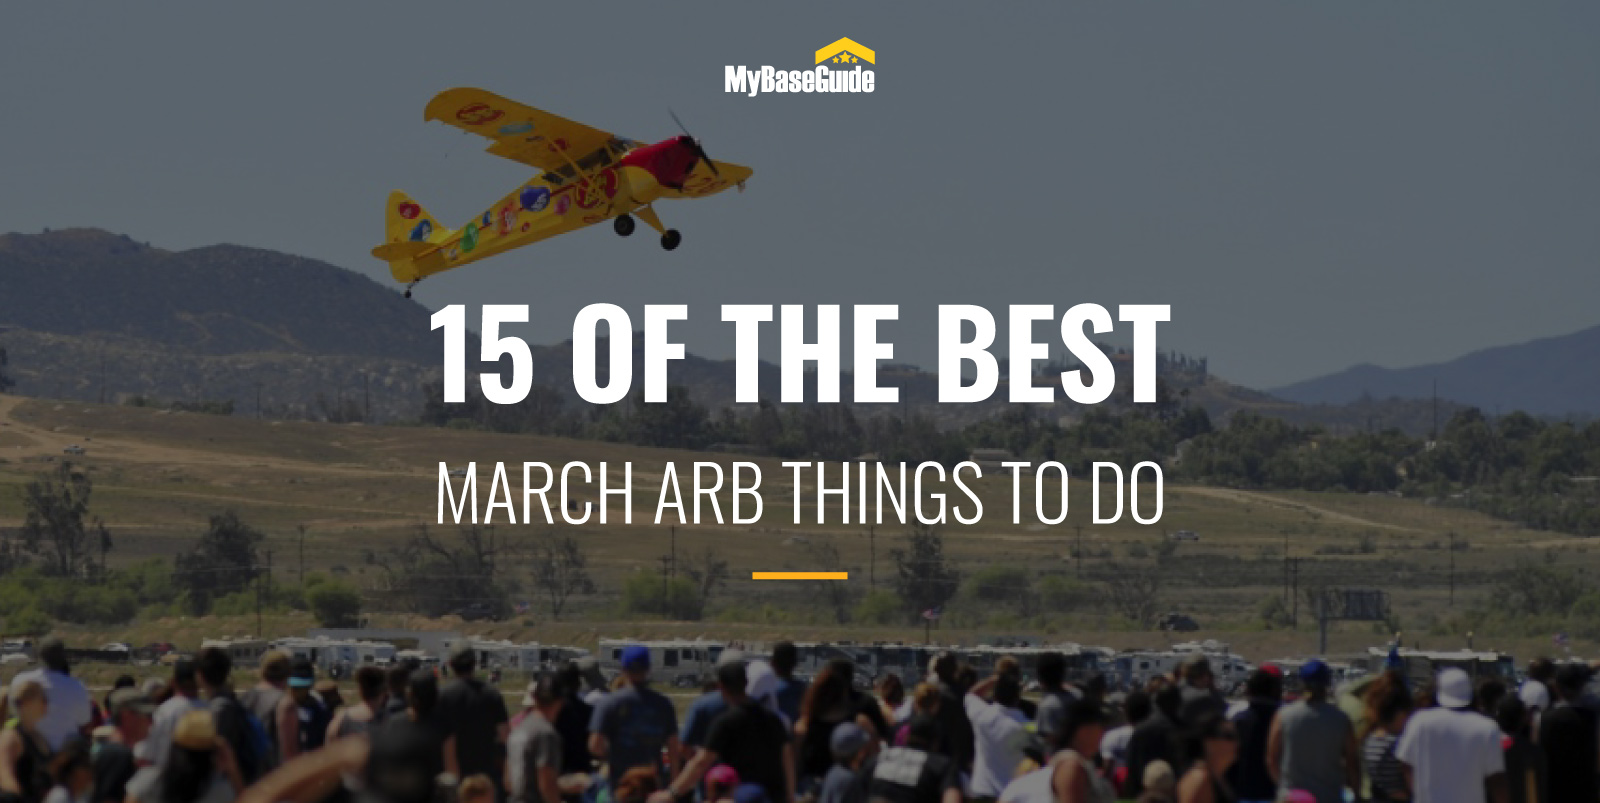 15 Of the Best March ARB Things to Do